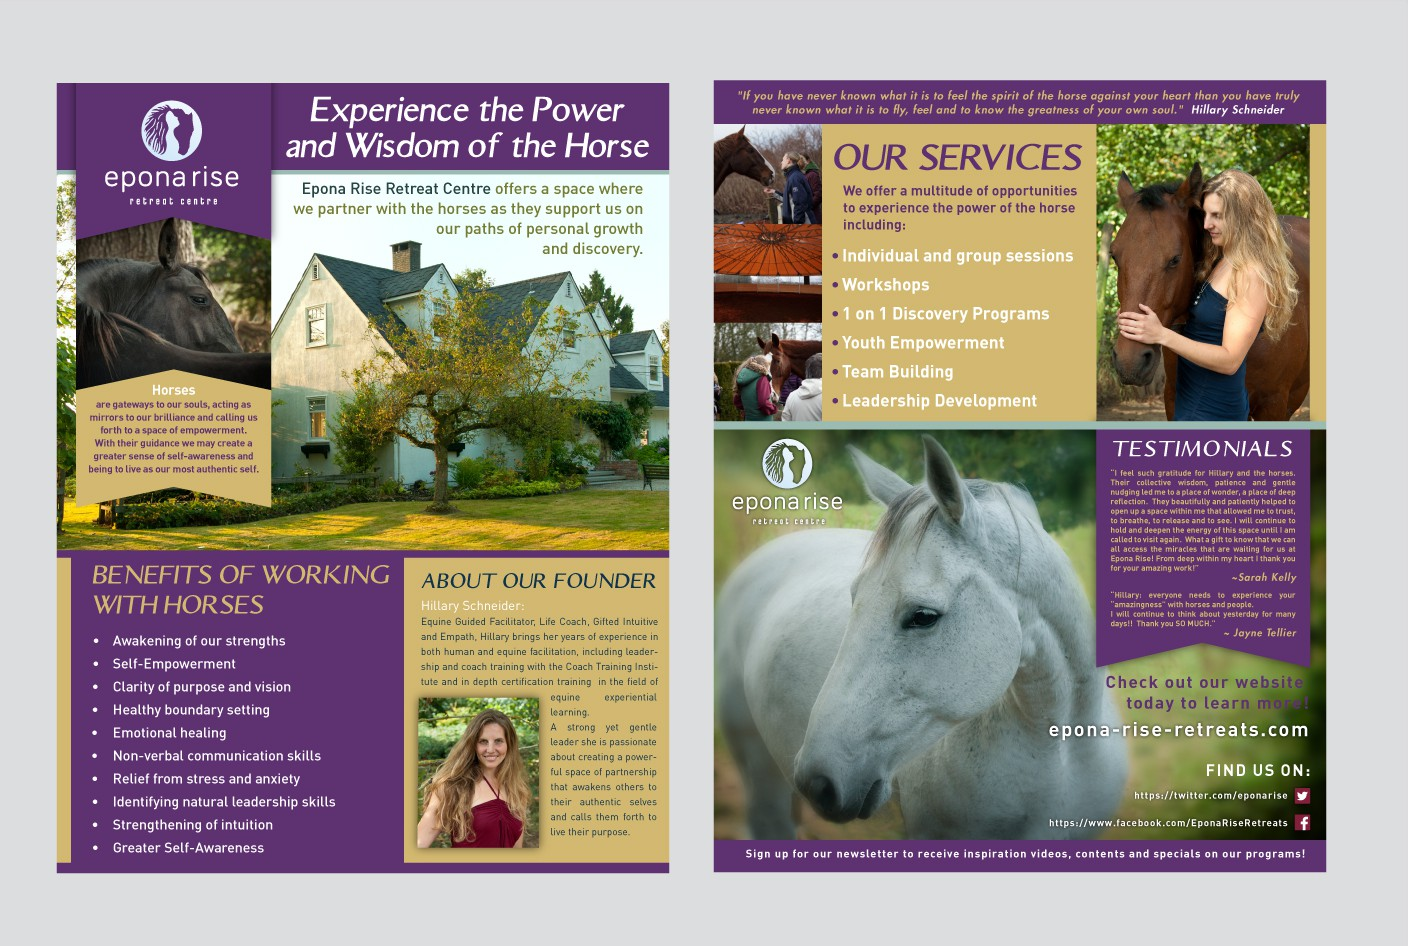 We Want you! Help Epona Rise Retreat Centre design an unique flyer for tradeshow